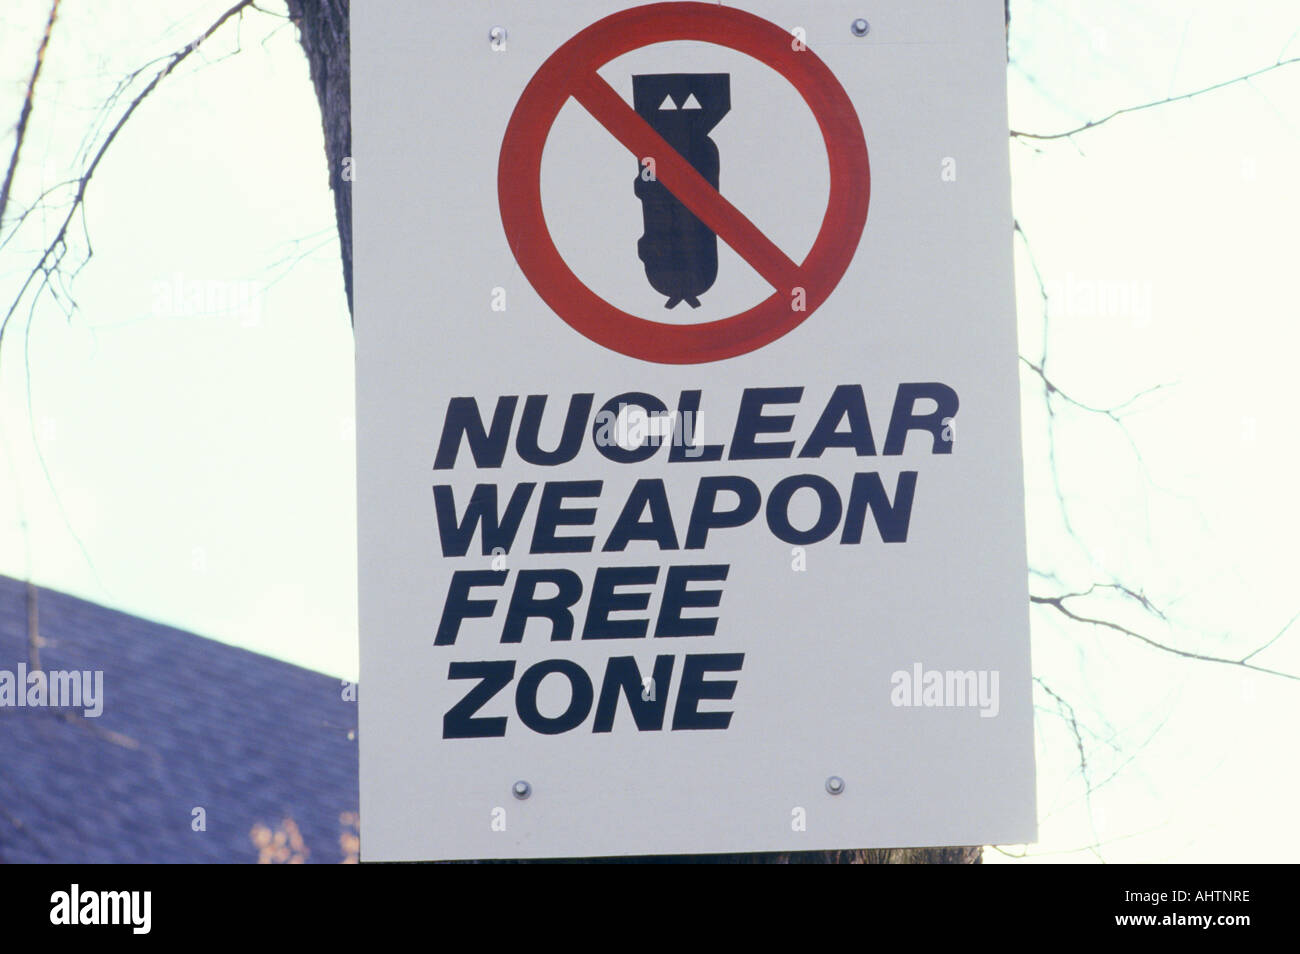 A nuclear weapon free zone sign - Stock Image